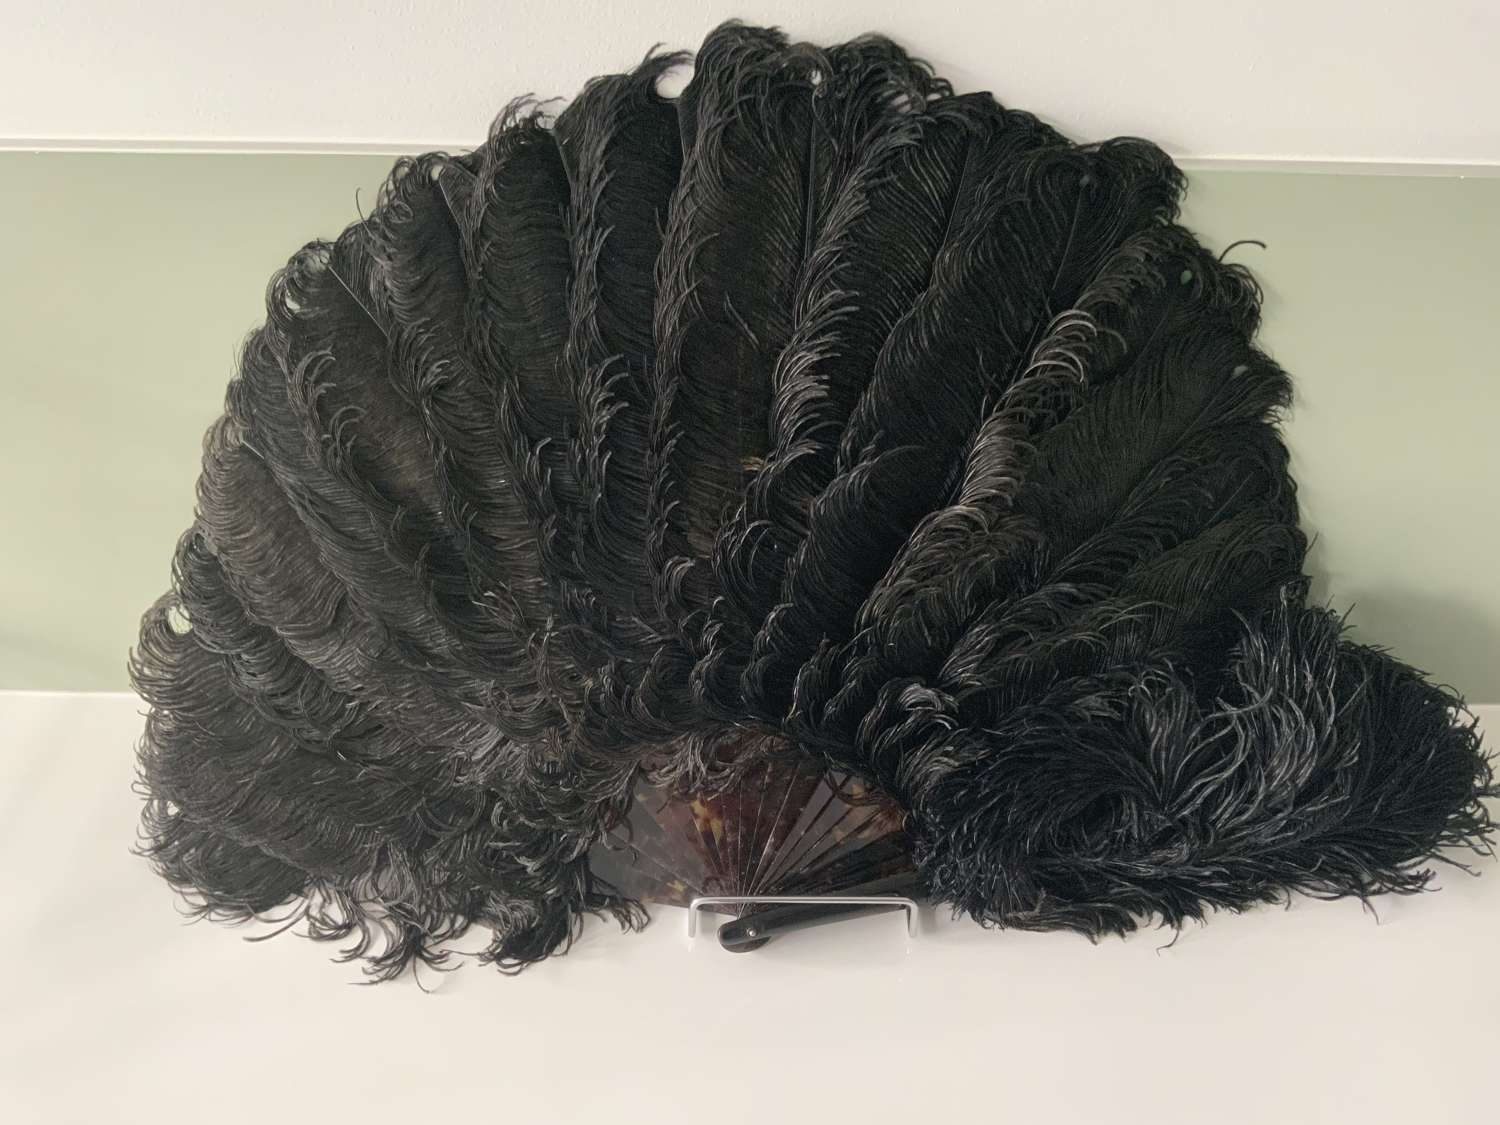 Antique black ostrich feather fan